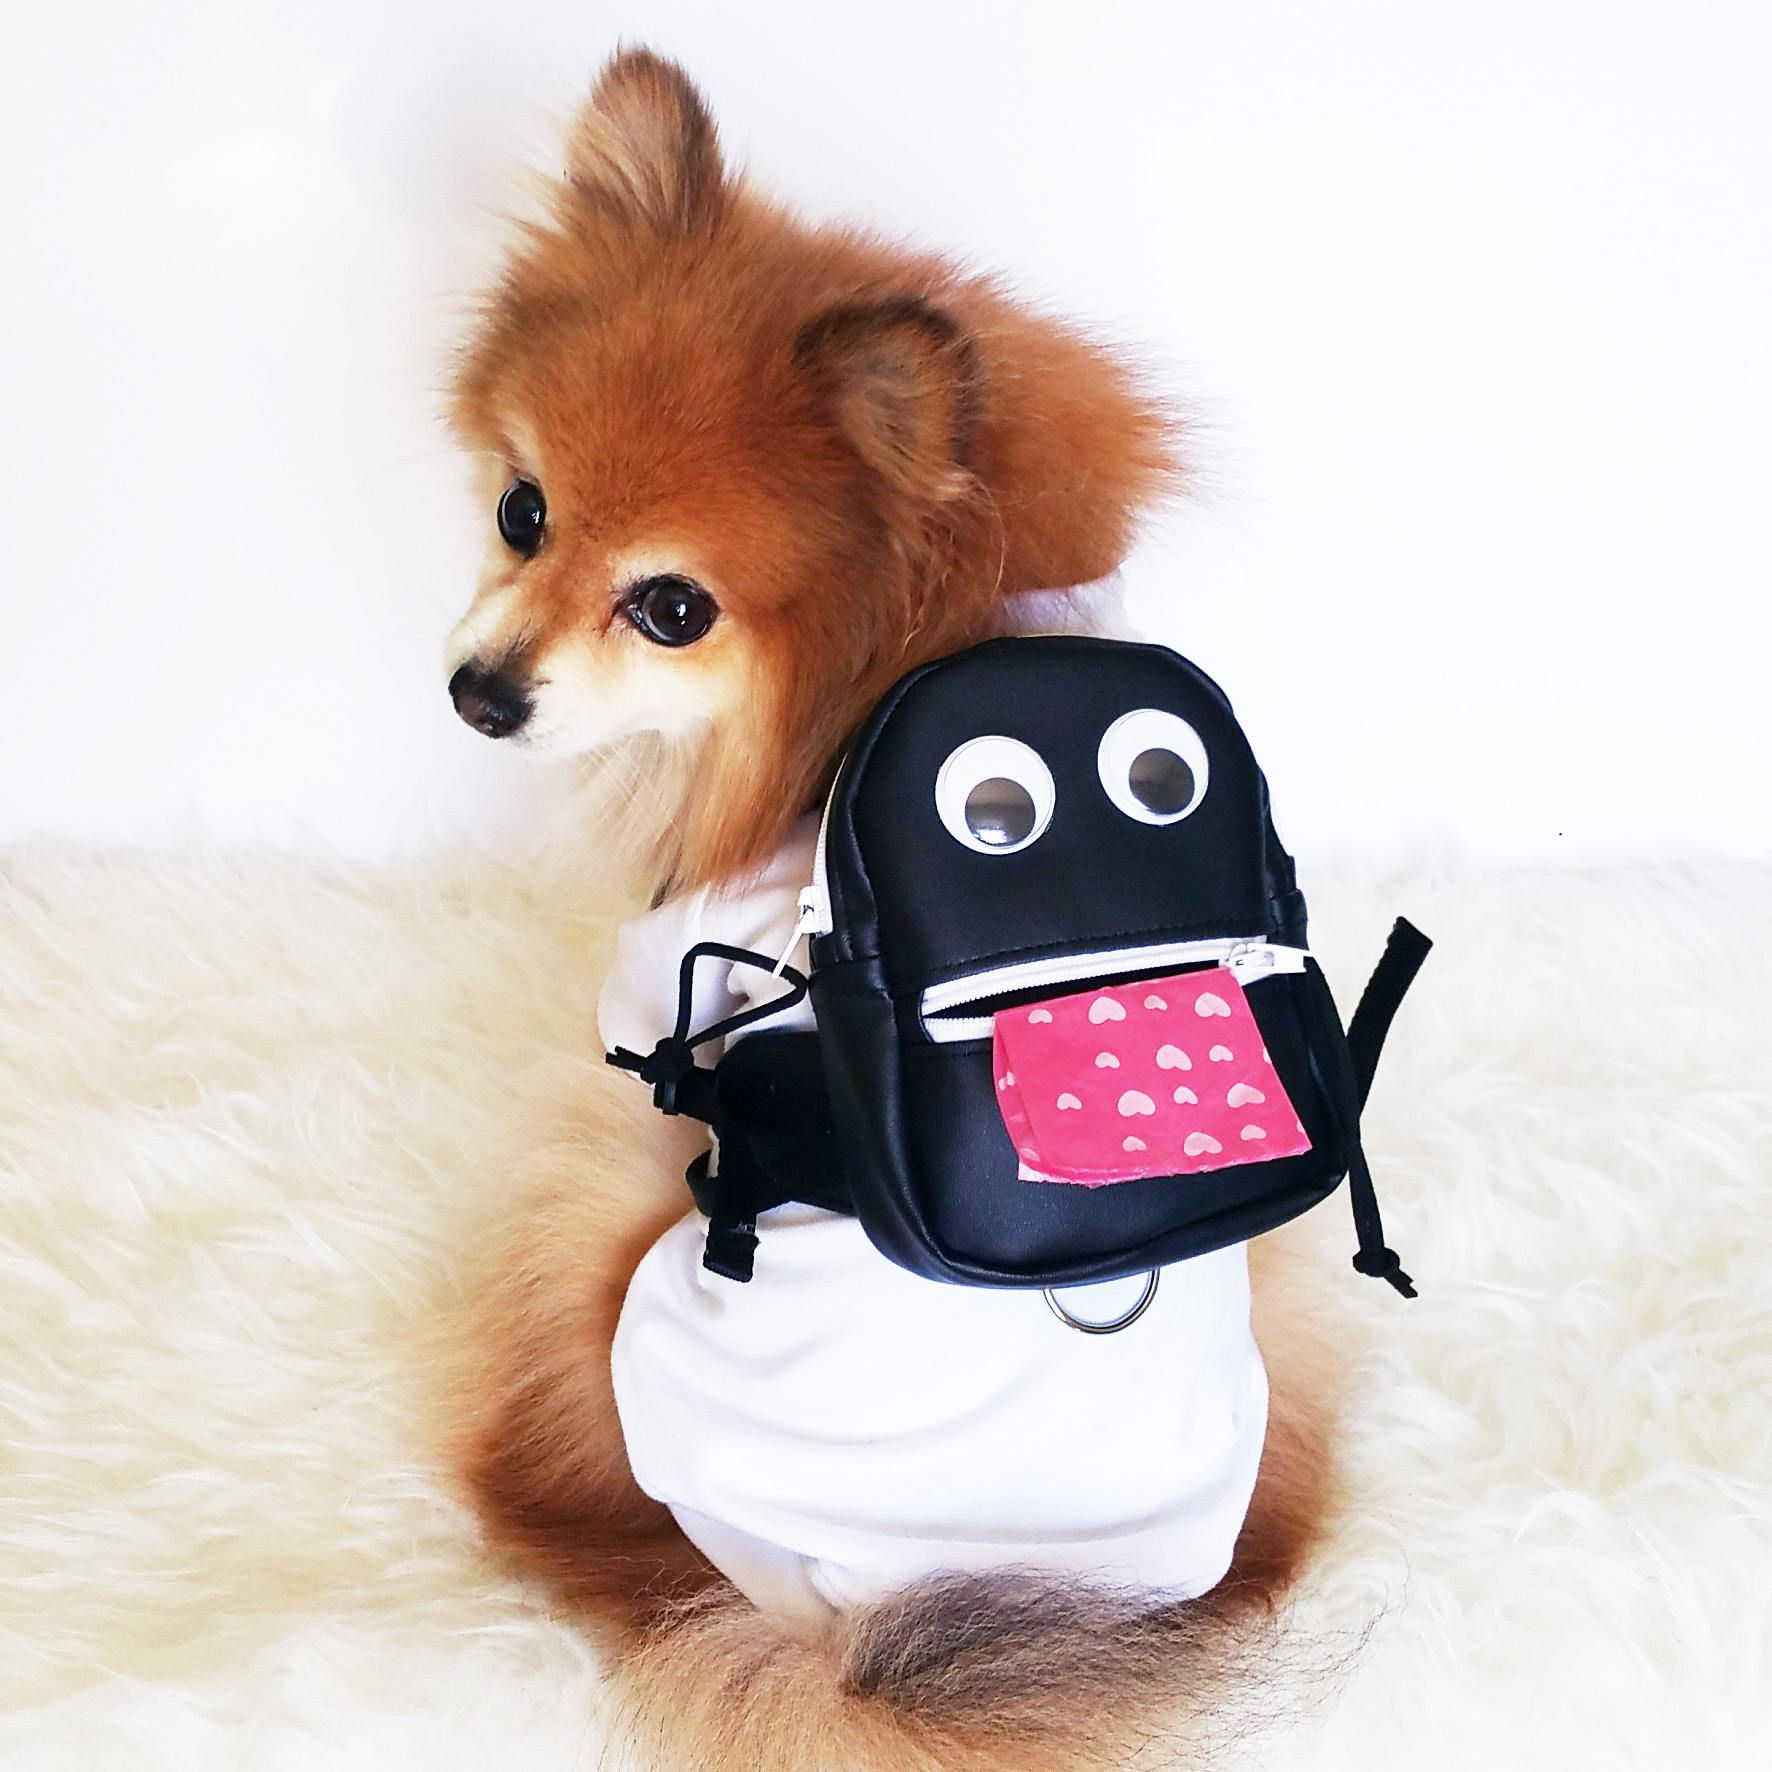 Dog Leather Backpack With Poop Bags Dogs Harness Vest Puppy